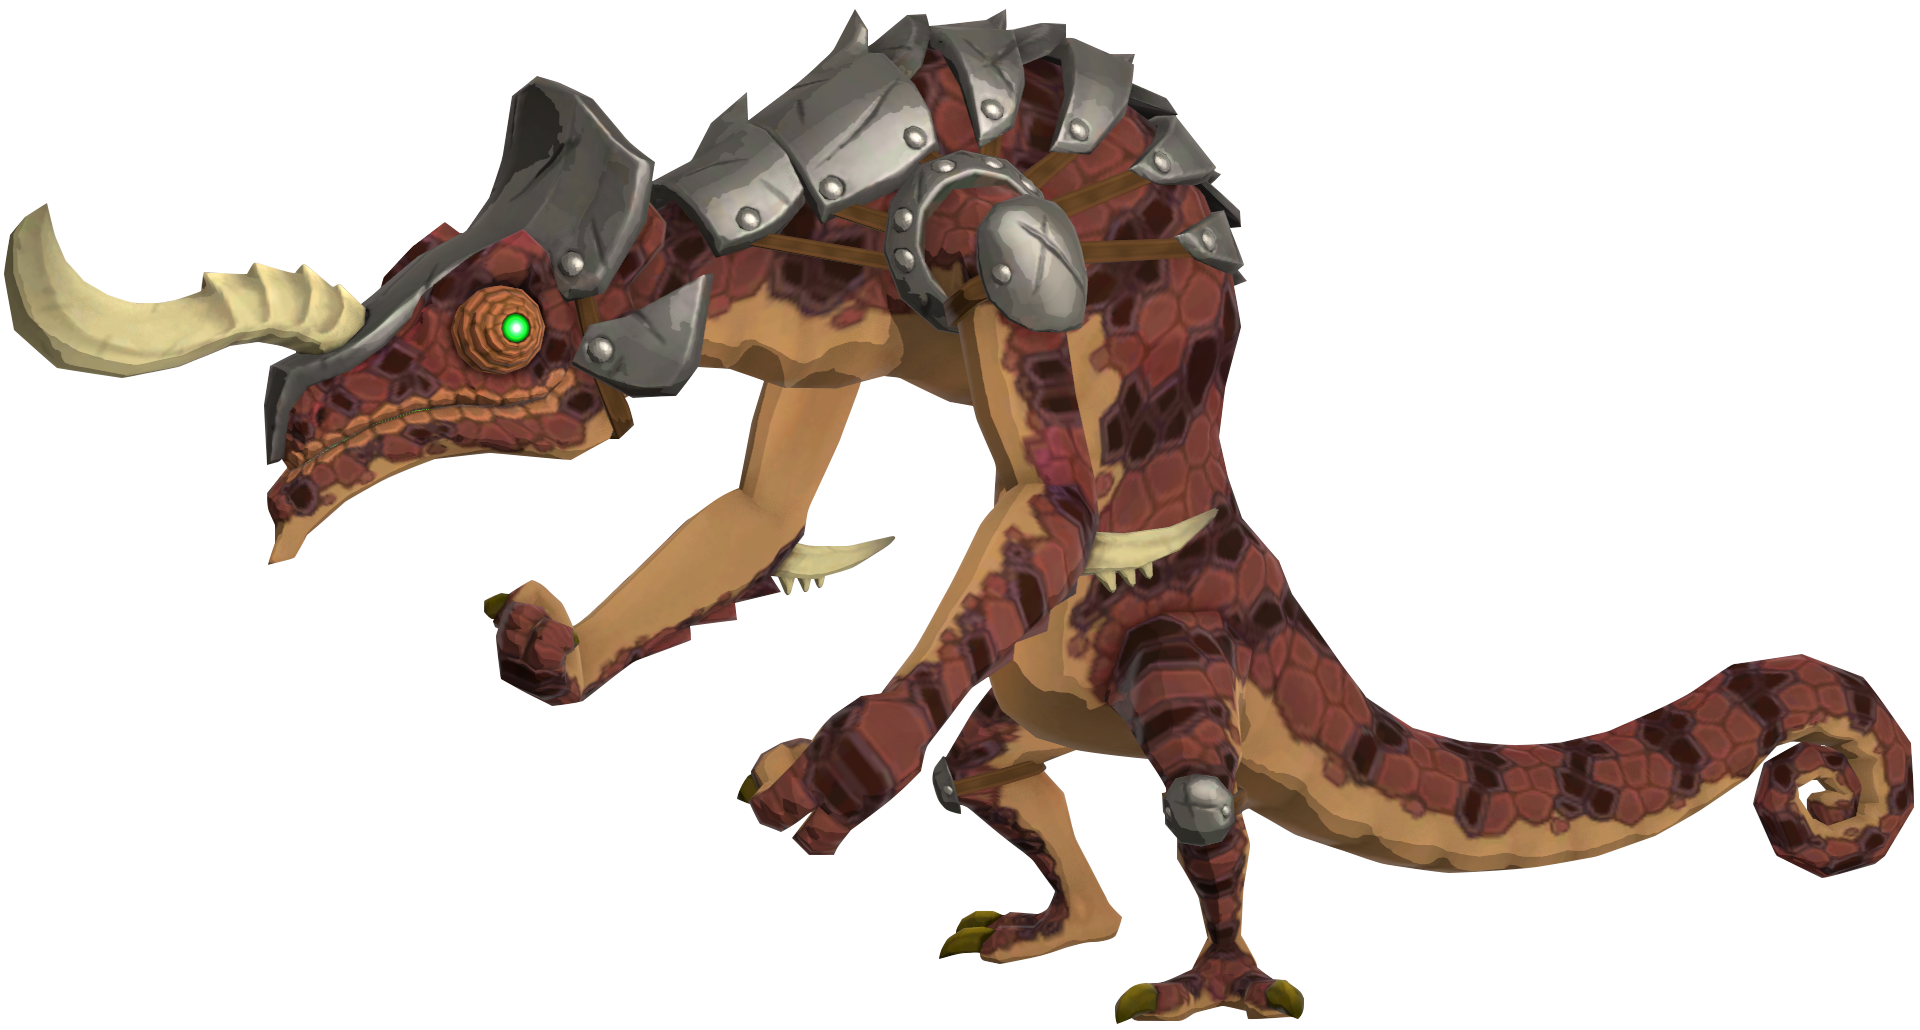 BotW_Fire-Breath_Lizalfos_Model.png